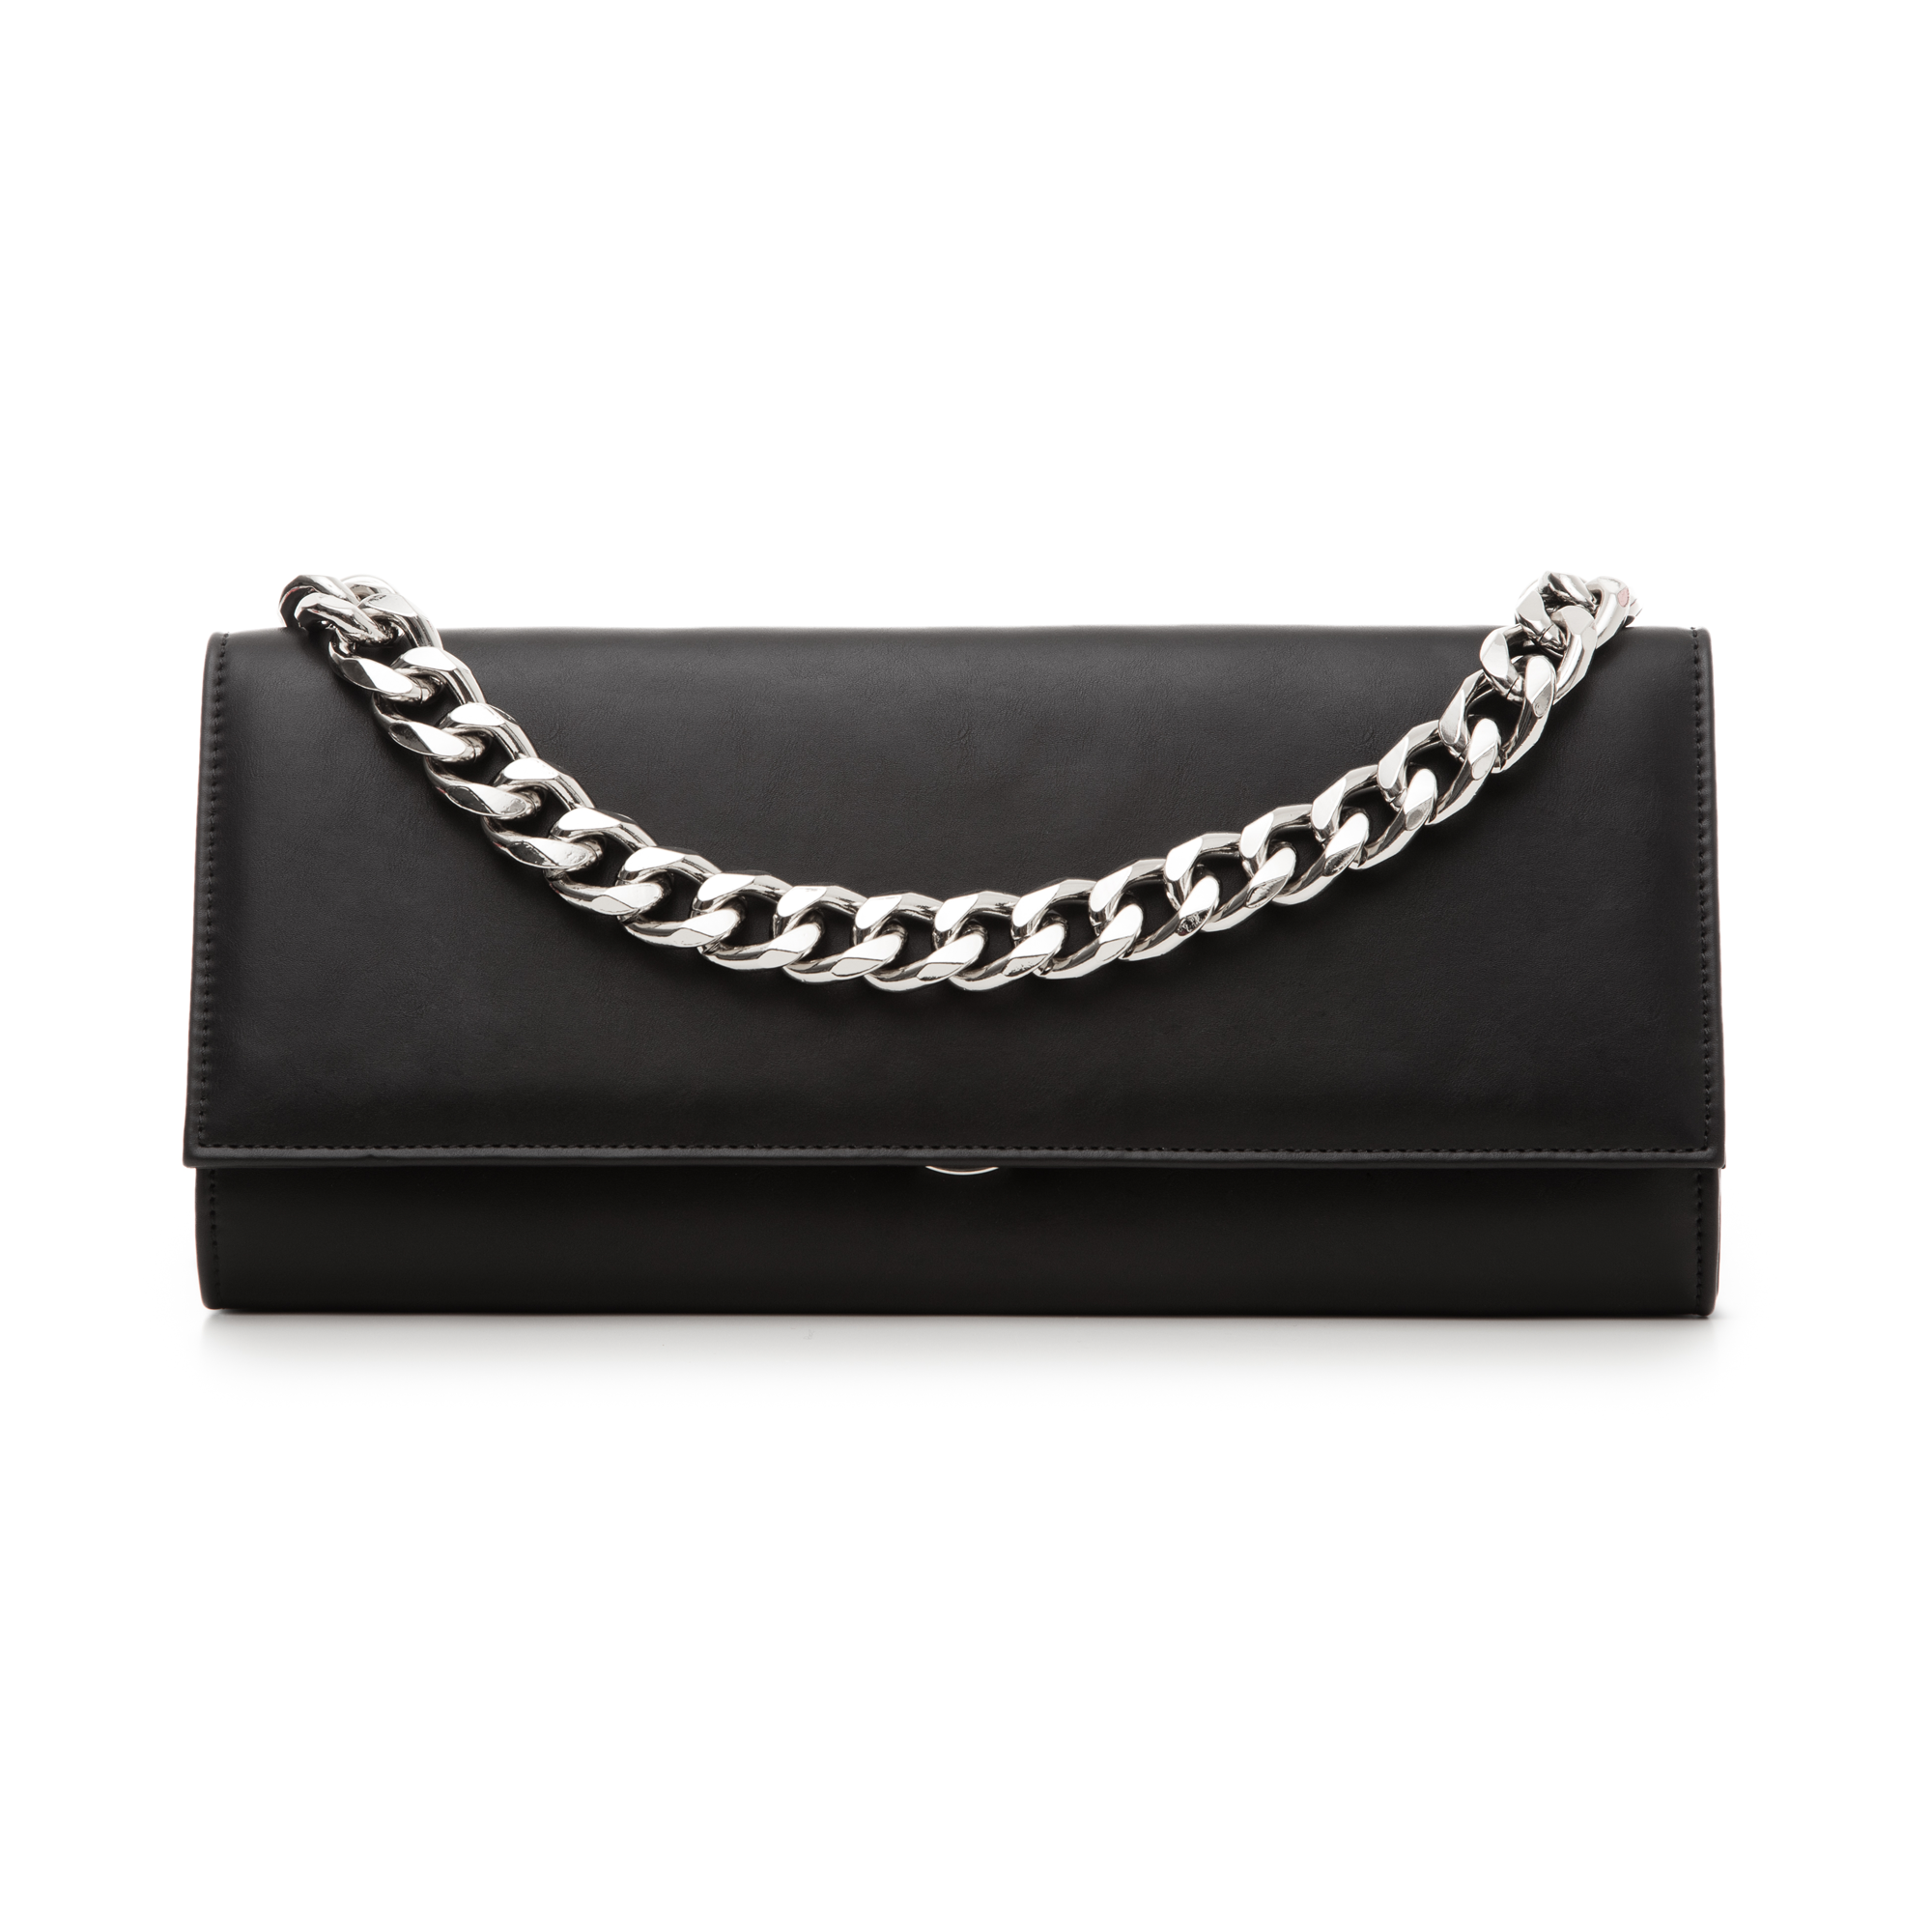 Pelle DonnaPrimadonna Collection Nera In Pochette Maxi Eco Con Catena Fc1JTlK